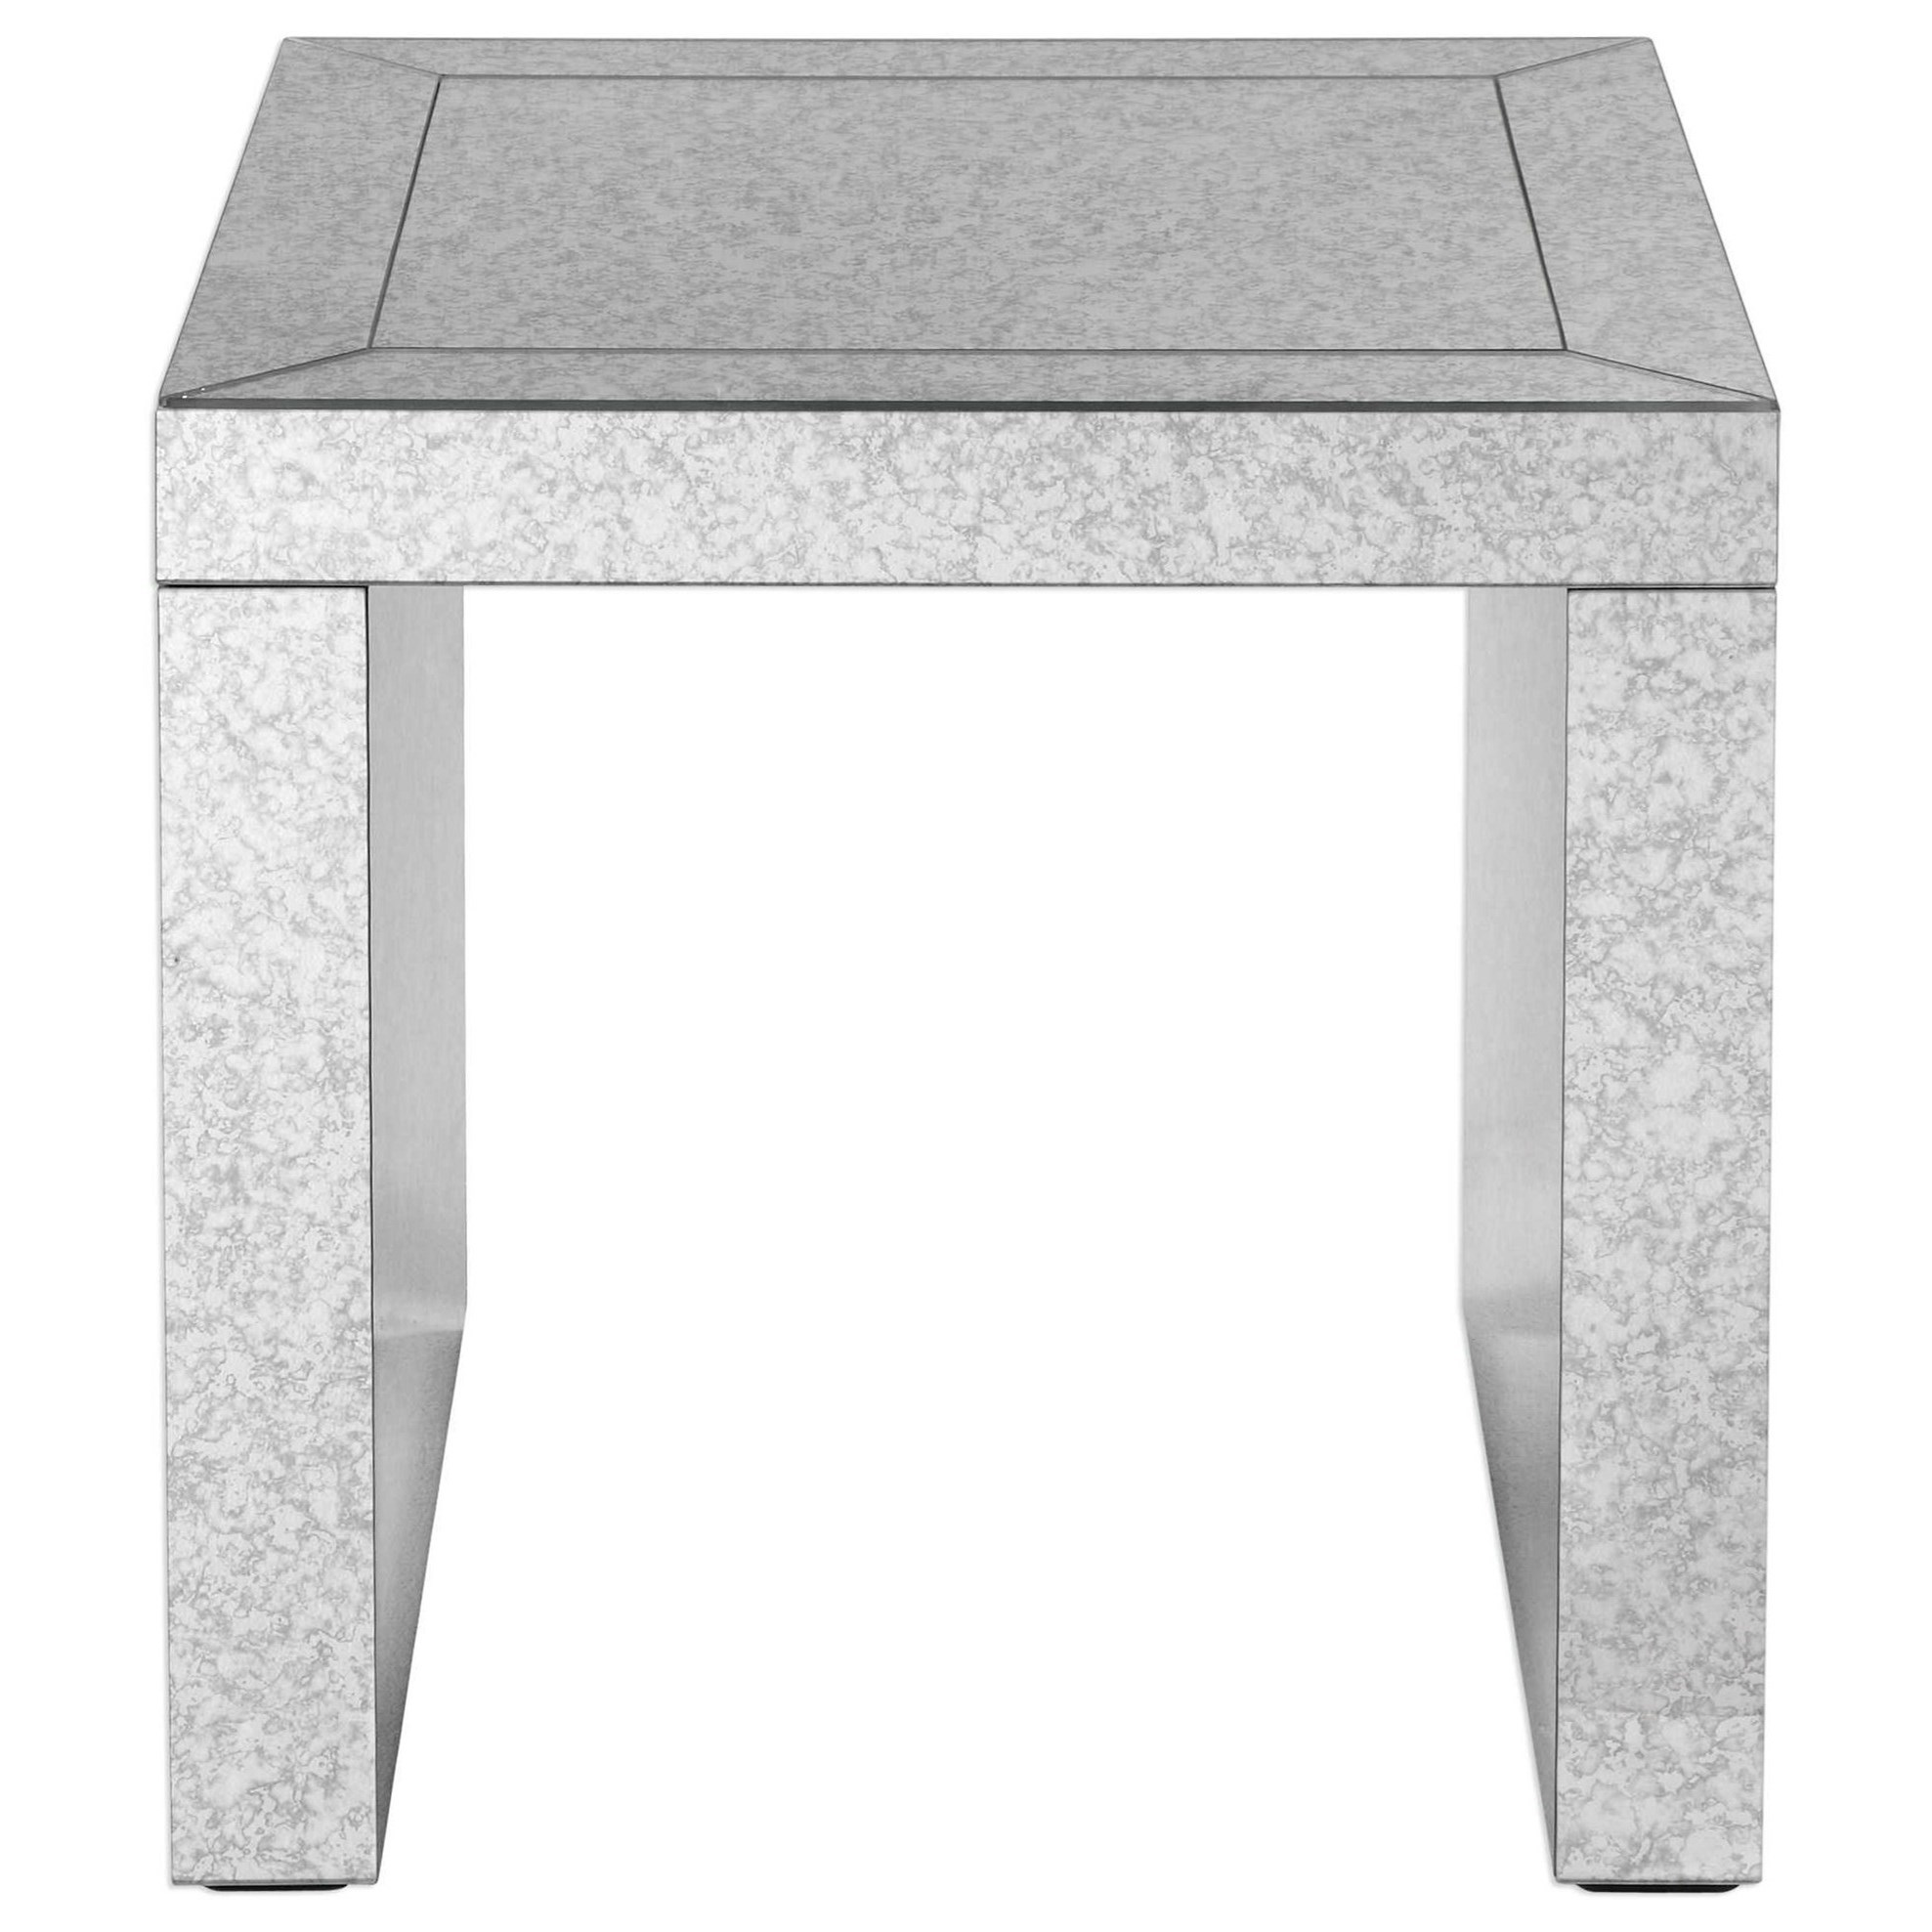 Uttermost Accent Furniture Nora Mirrored Accent Table - Item Number: 24709